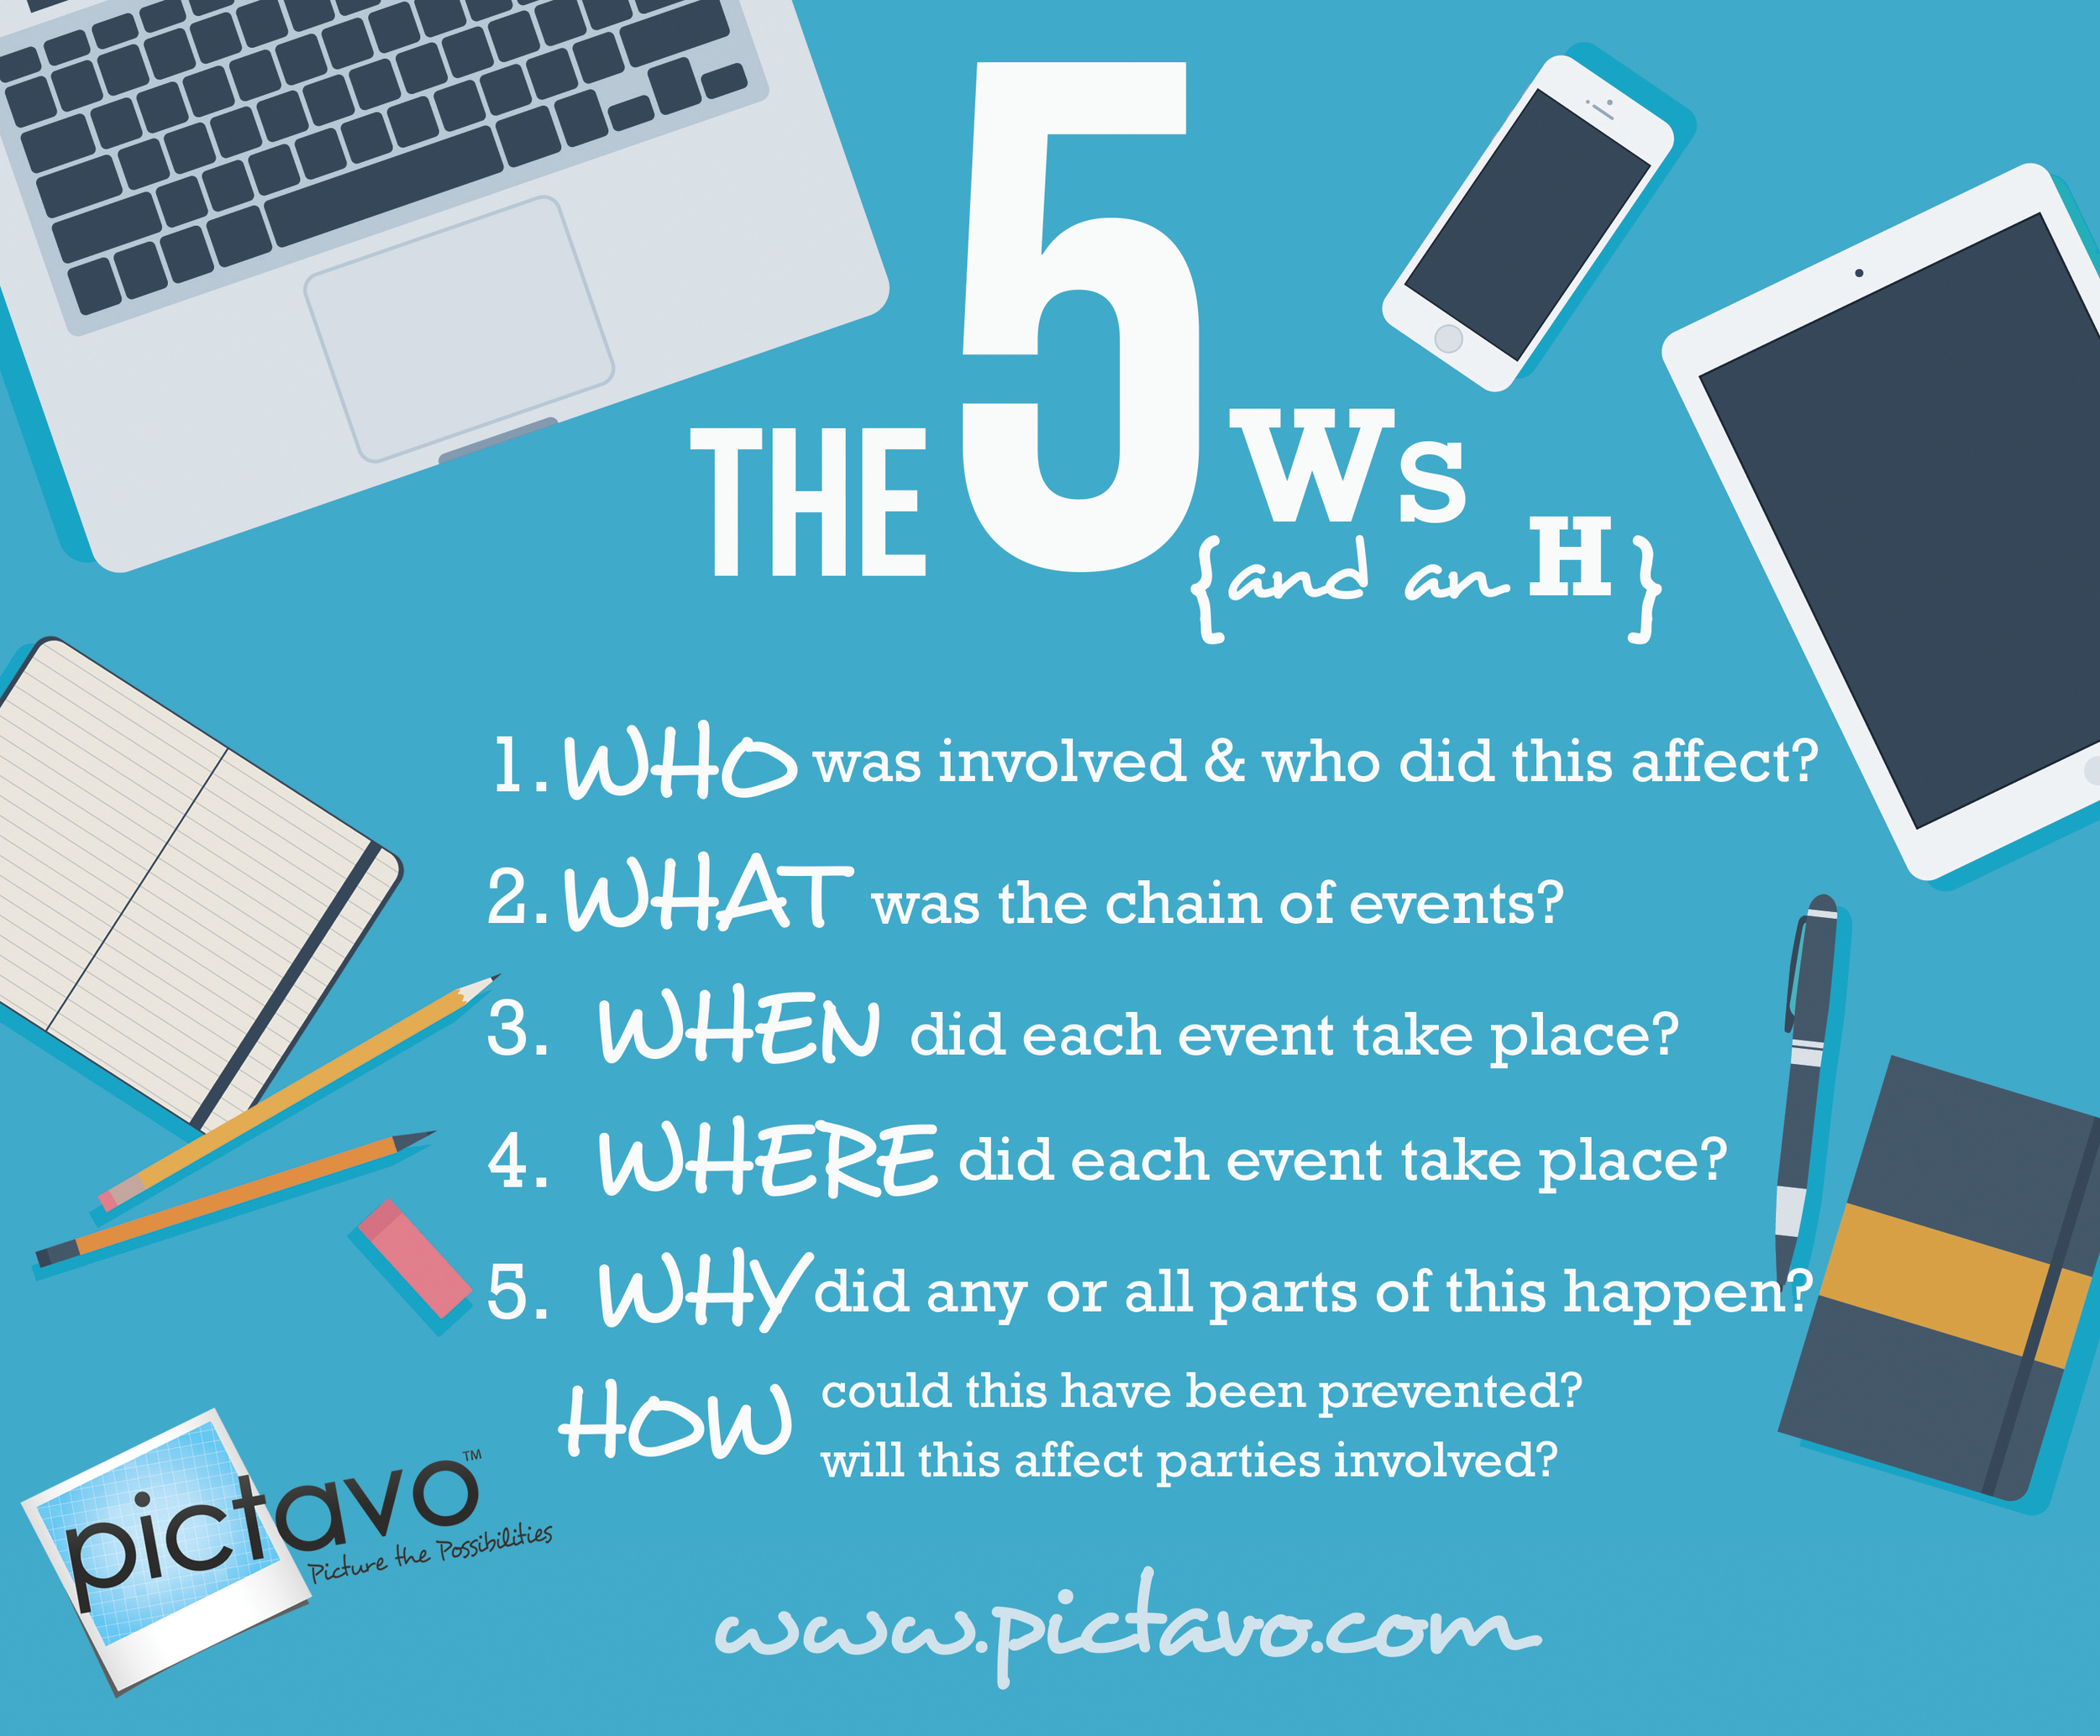 Did you ask all five W's? What about H?